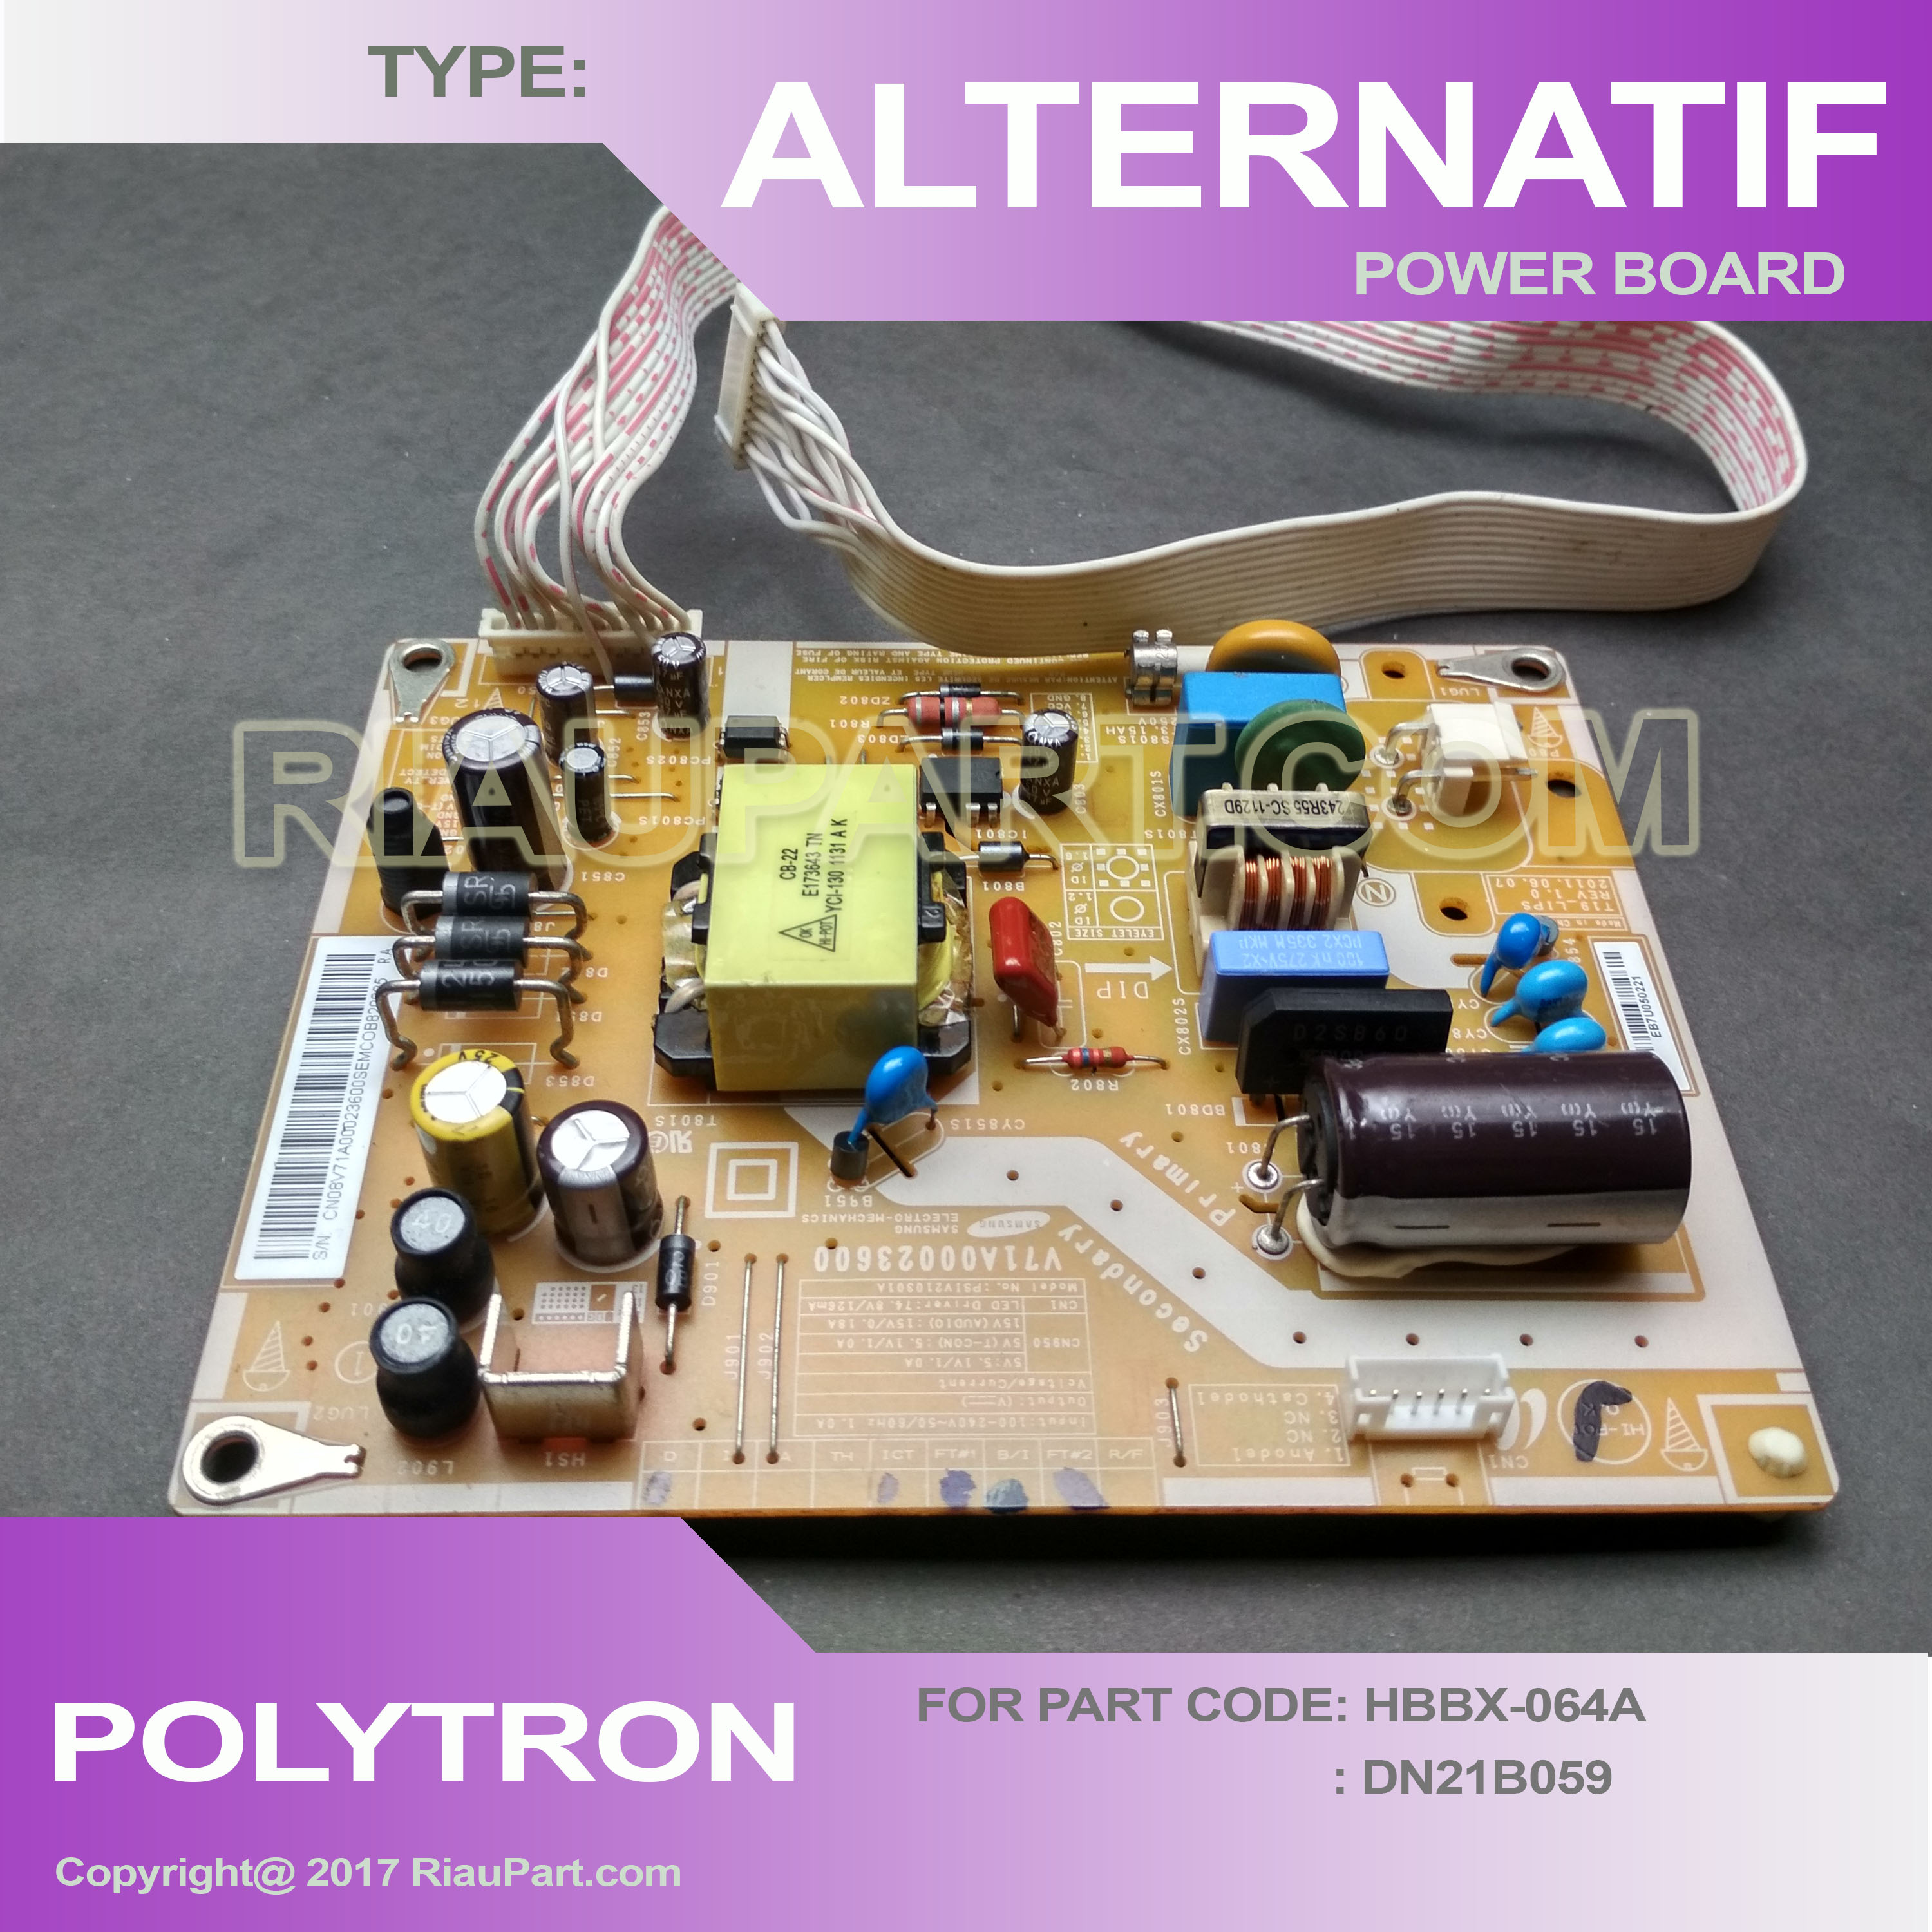 Power Supply Alternatif Polytron LED 20 - 24 inch Awet tinggal colok